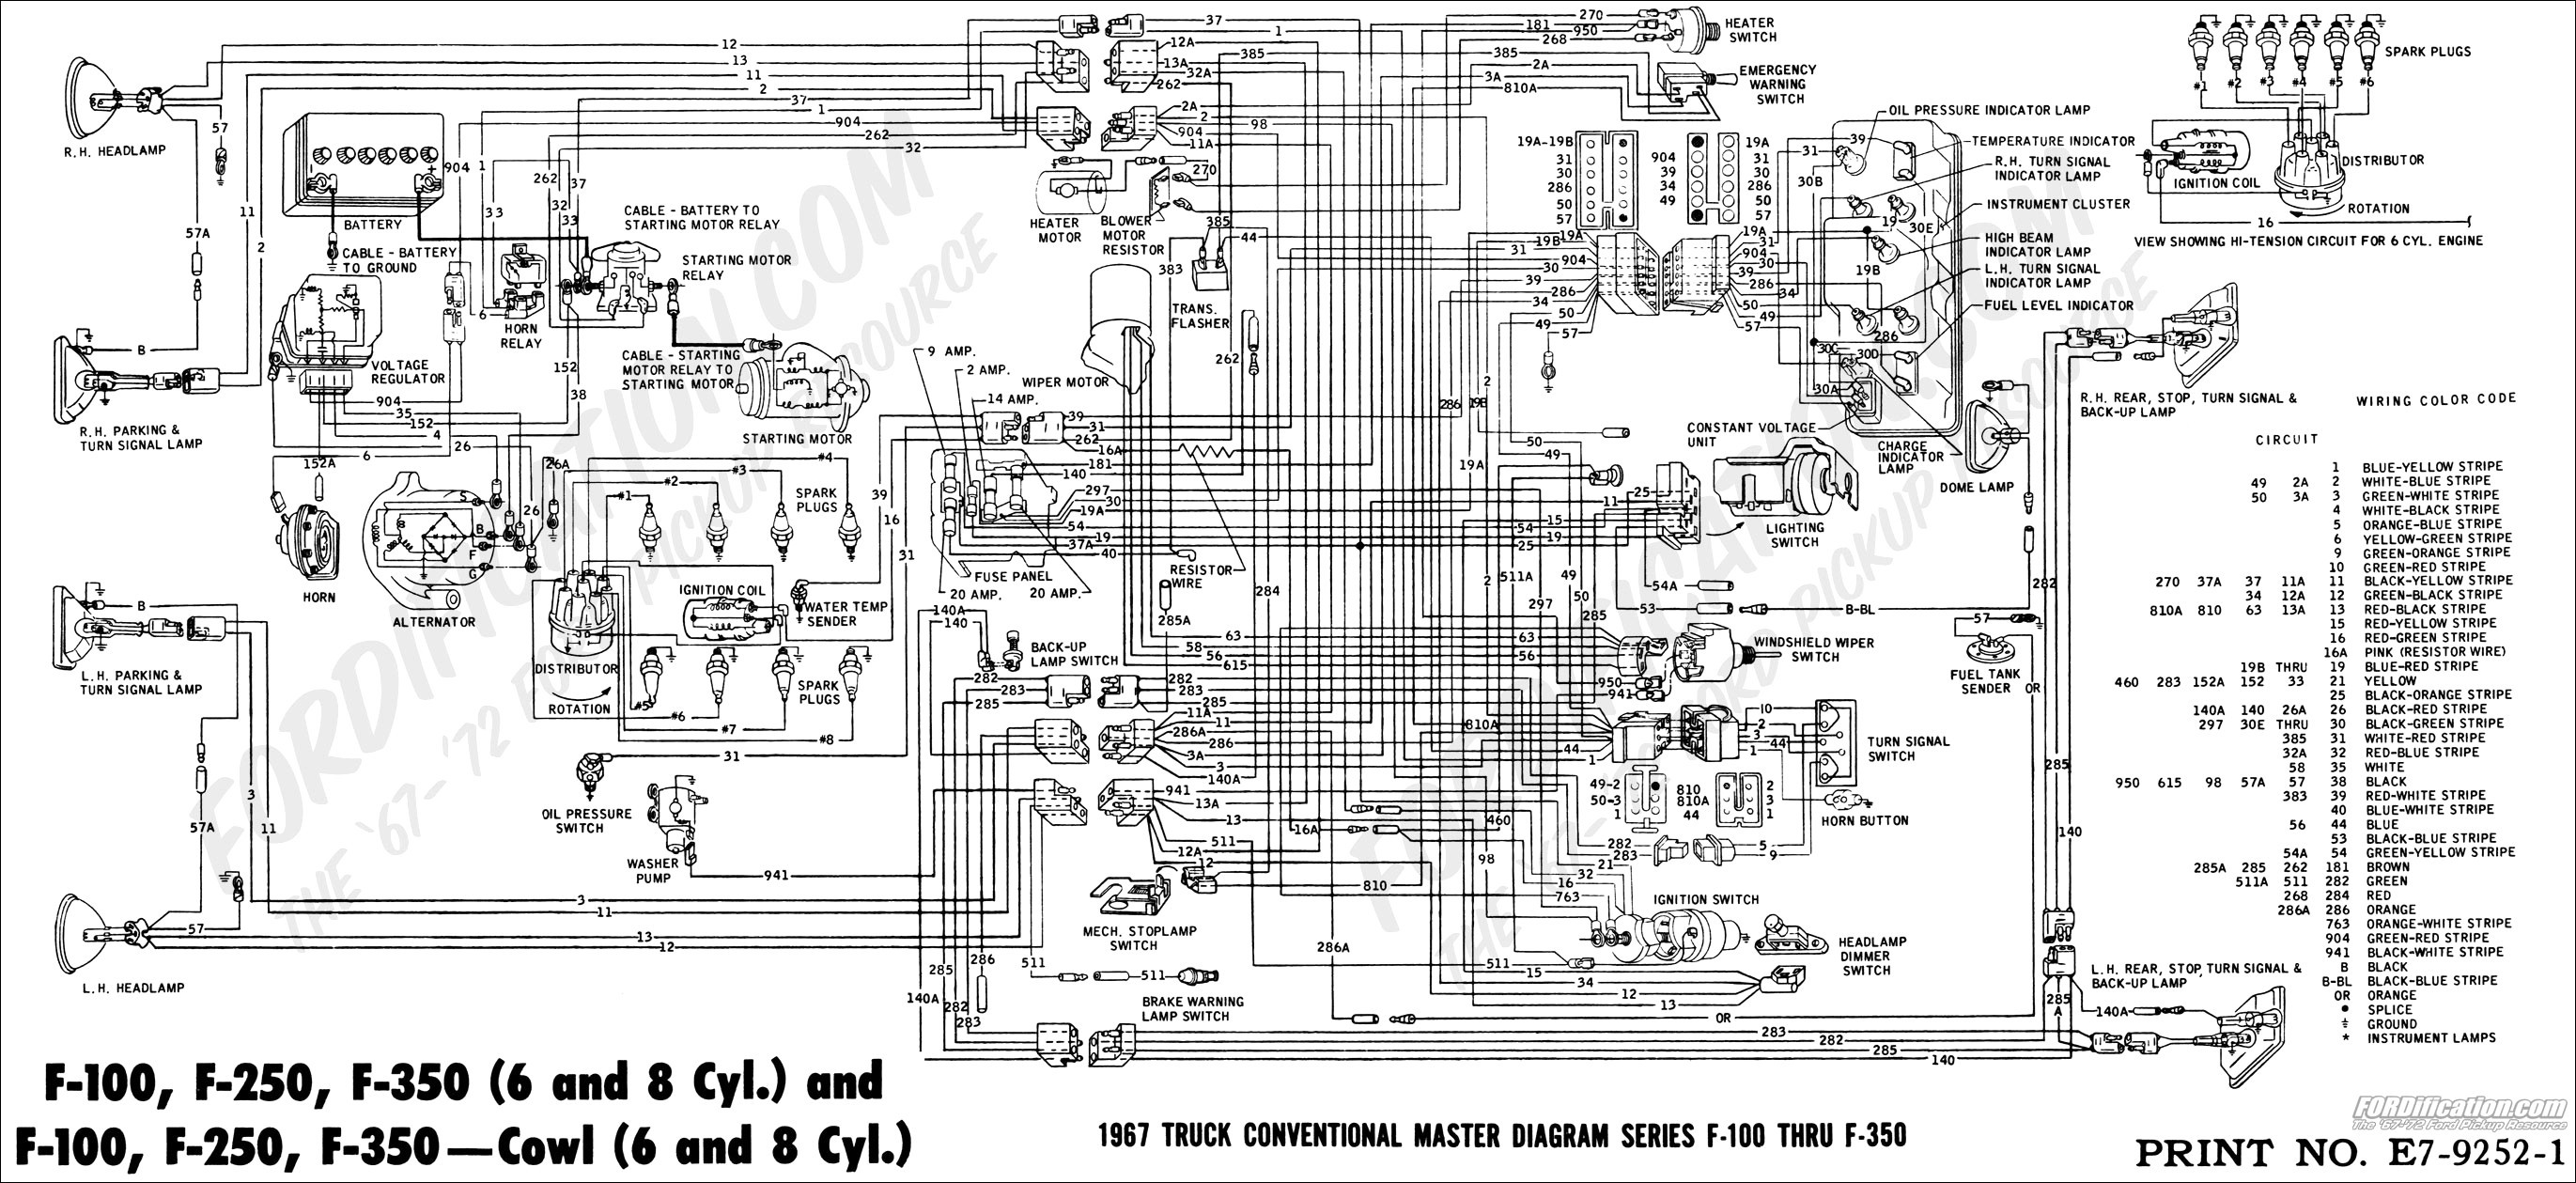 1989 ford truck wiring diagram wiring diagram online